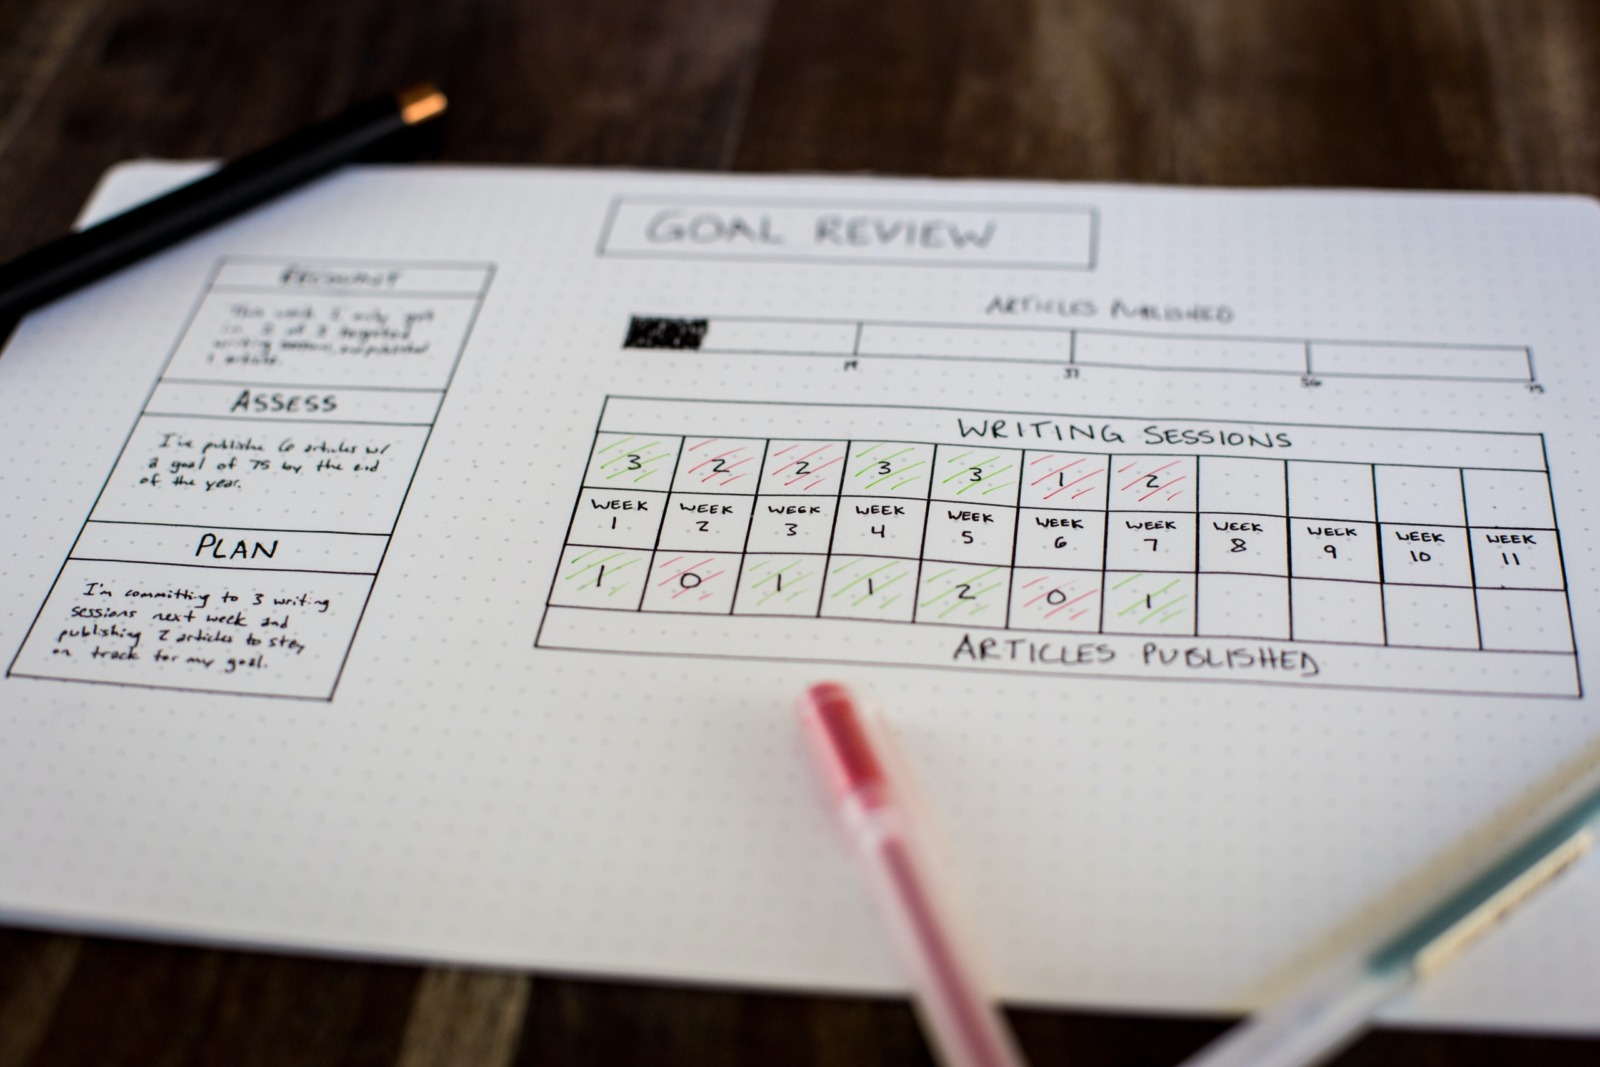 JazzHR's 2020 Performance Review Template